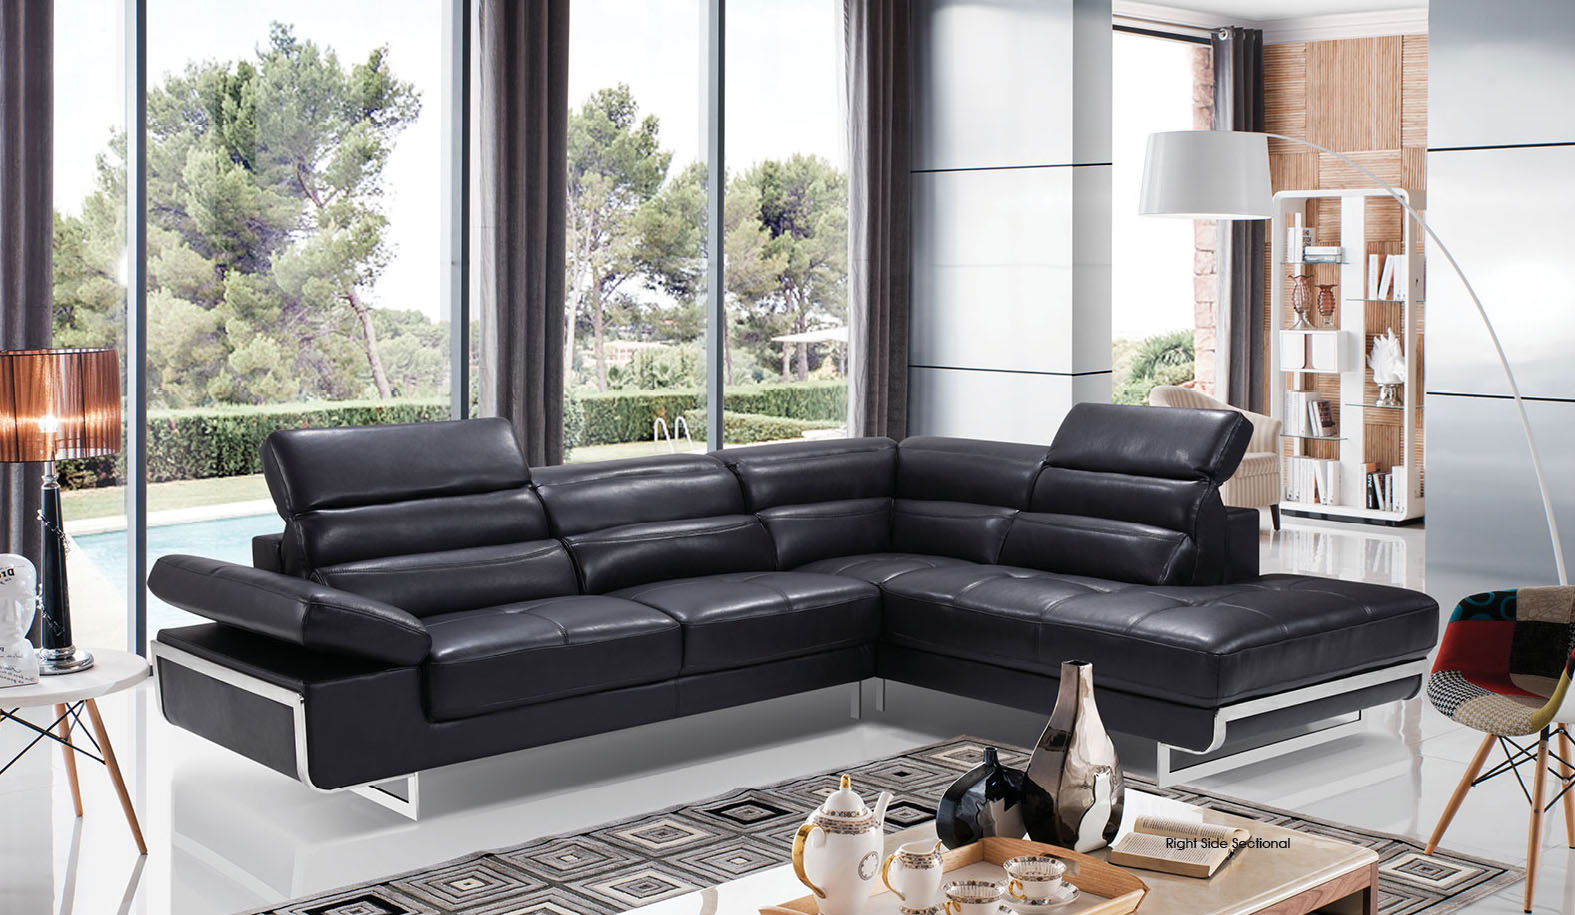 Leather Living High Class Italian Leather Living Room Furniture